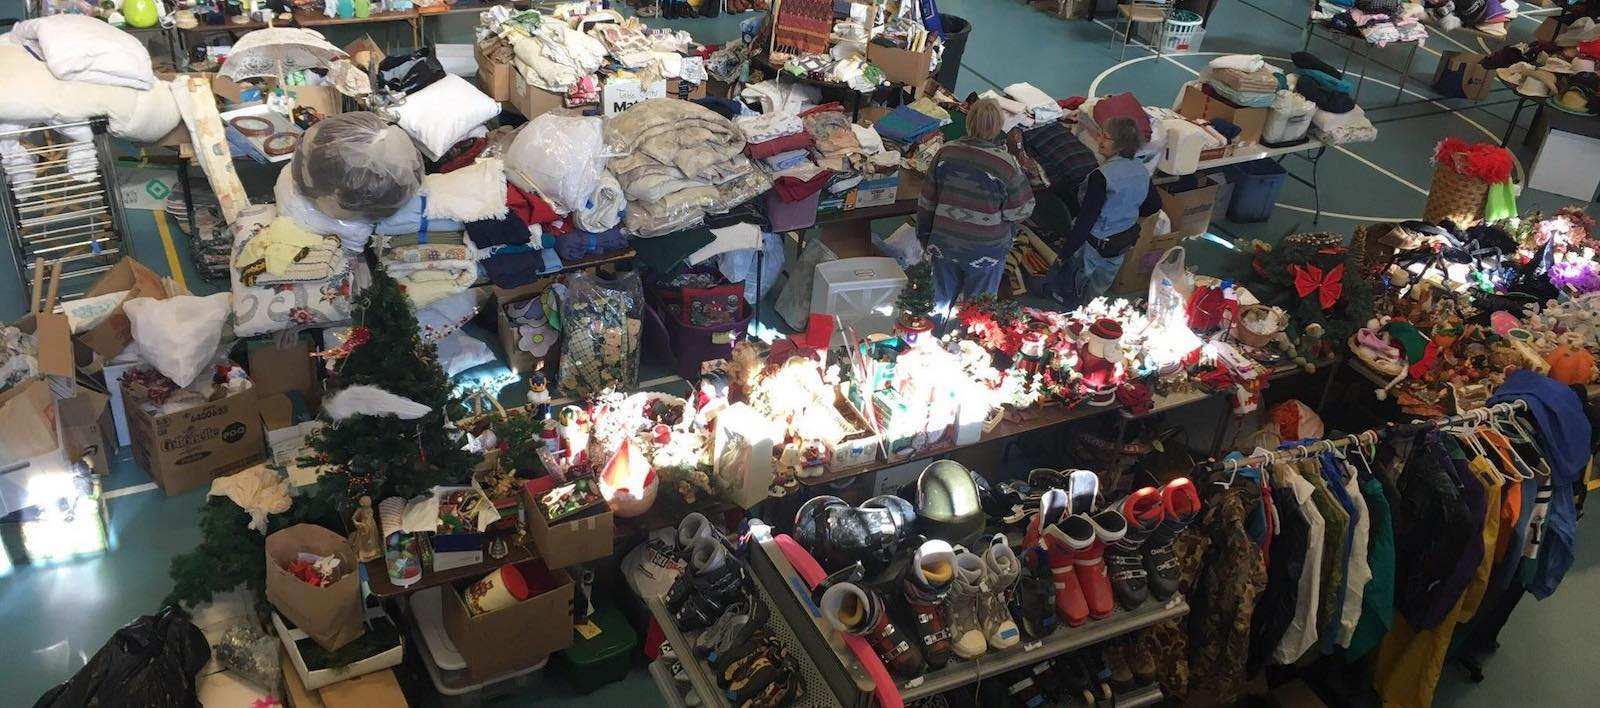 Image of the annual yard sale at the Mountain Forum for Peace in Nederland, Colorado